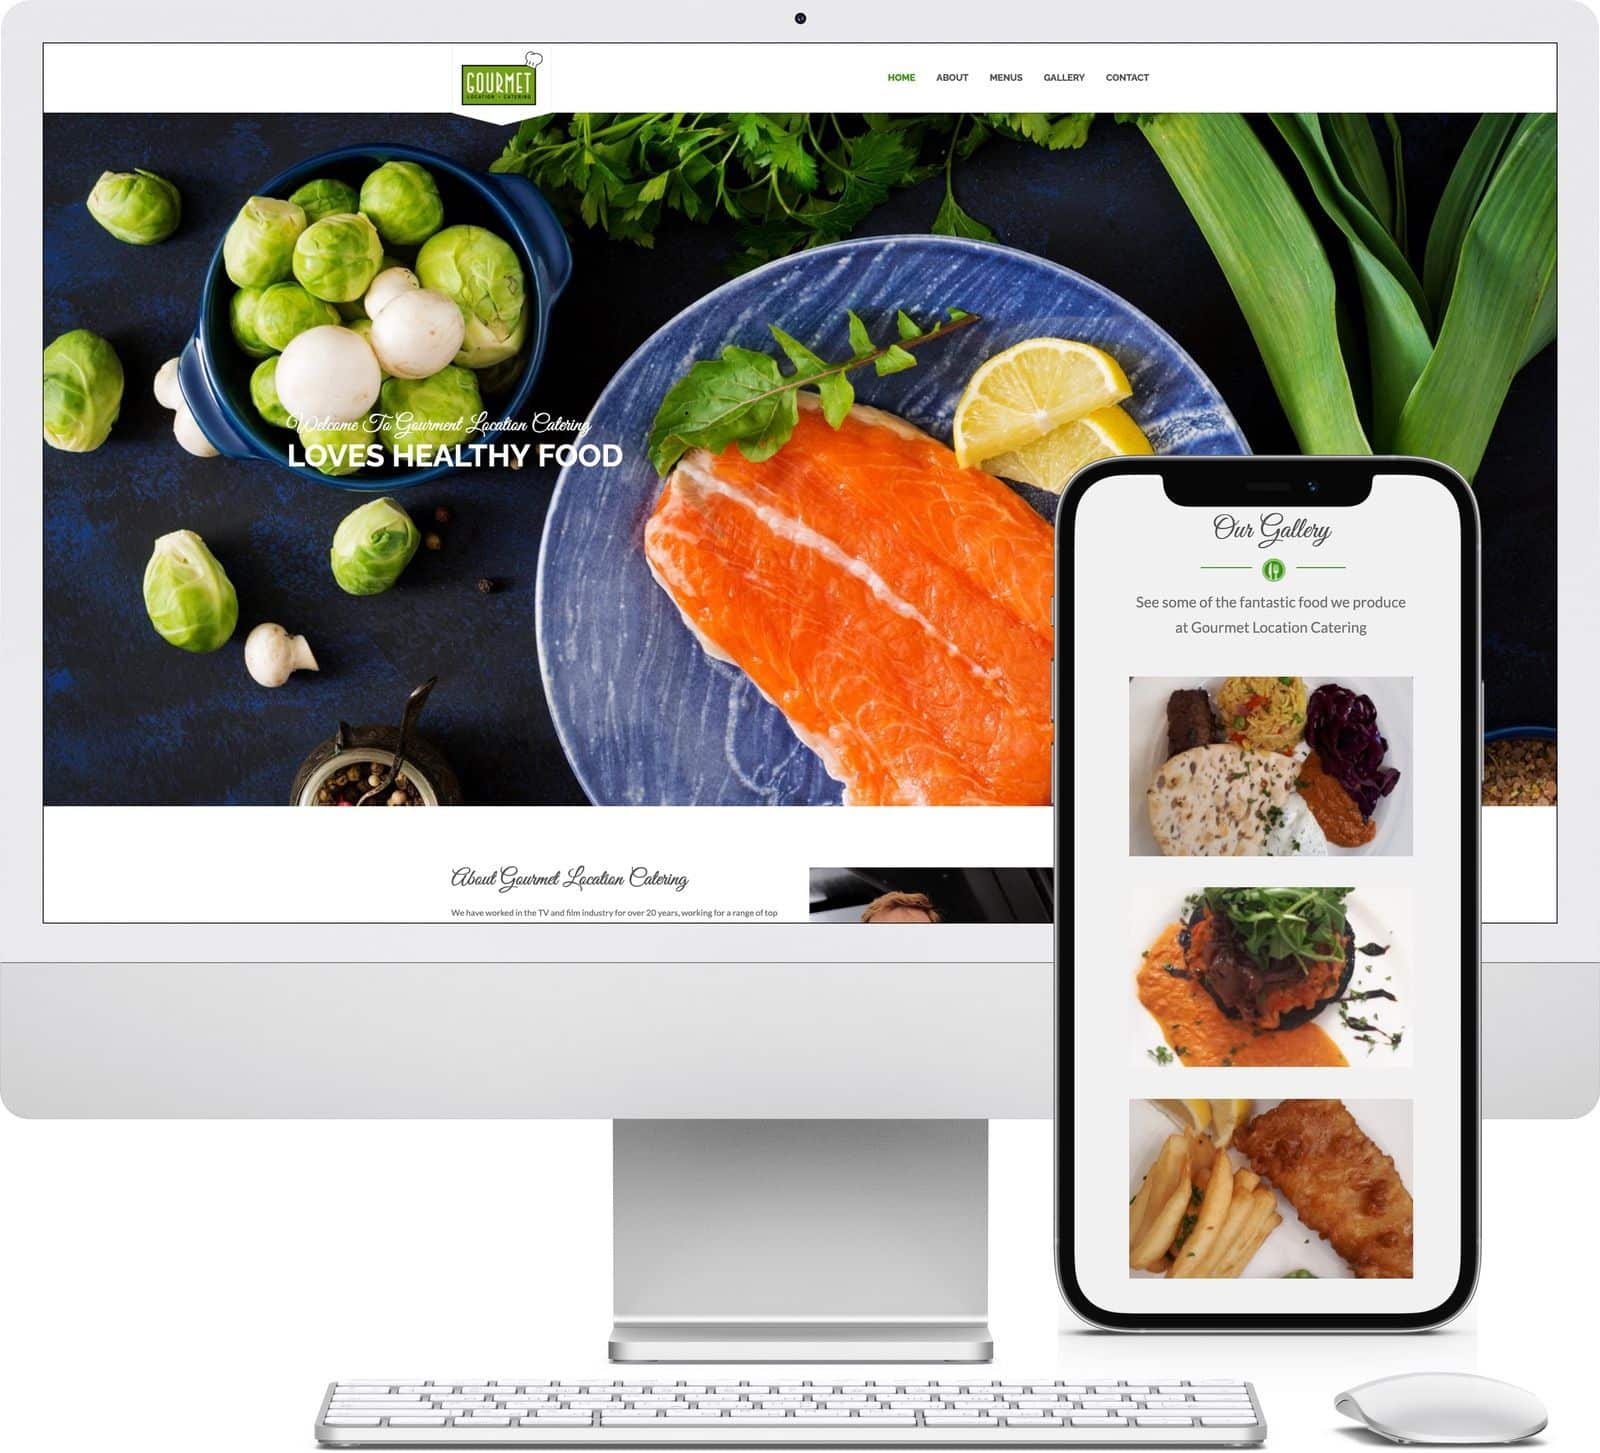 Gourmet Location Catering iMac and iPhone mockup image - Riotspace Creative